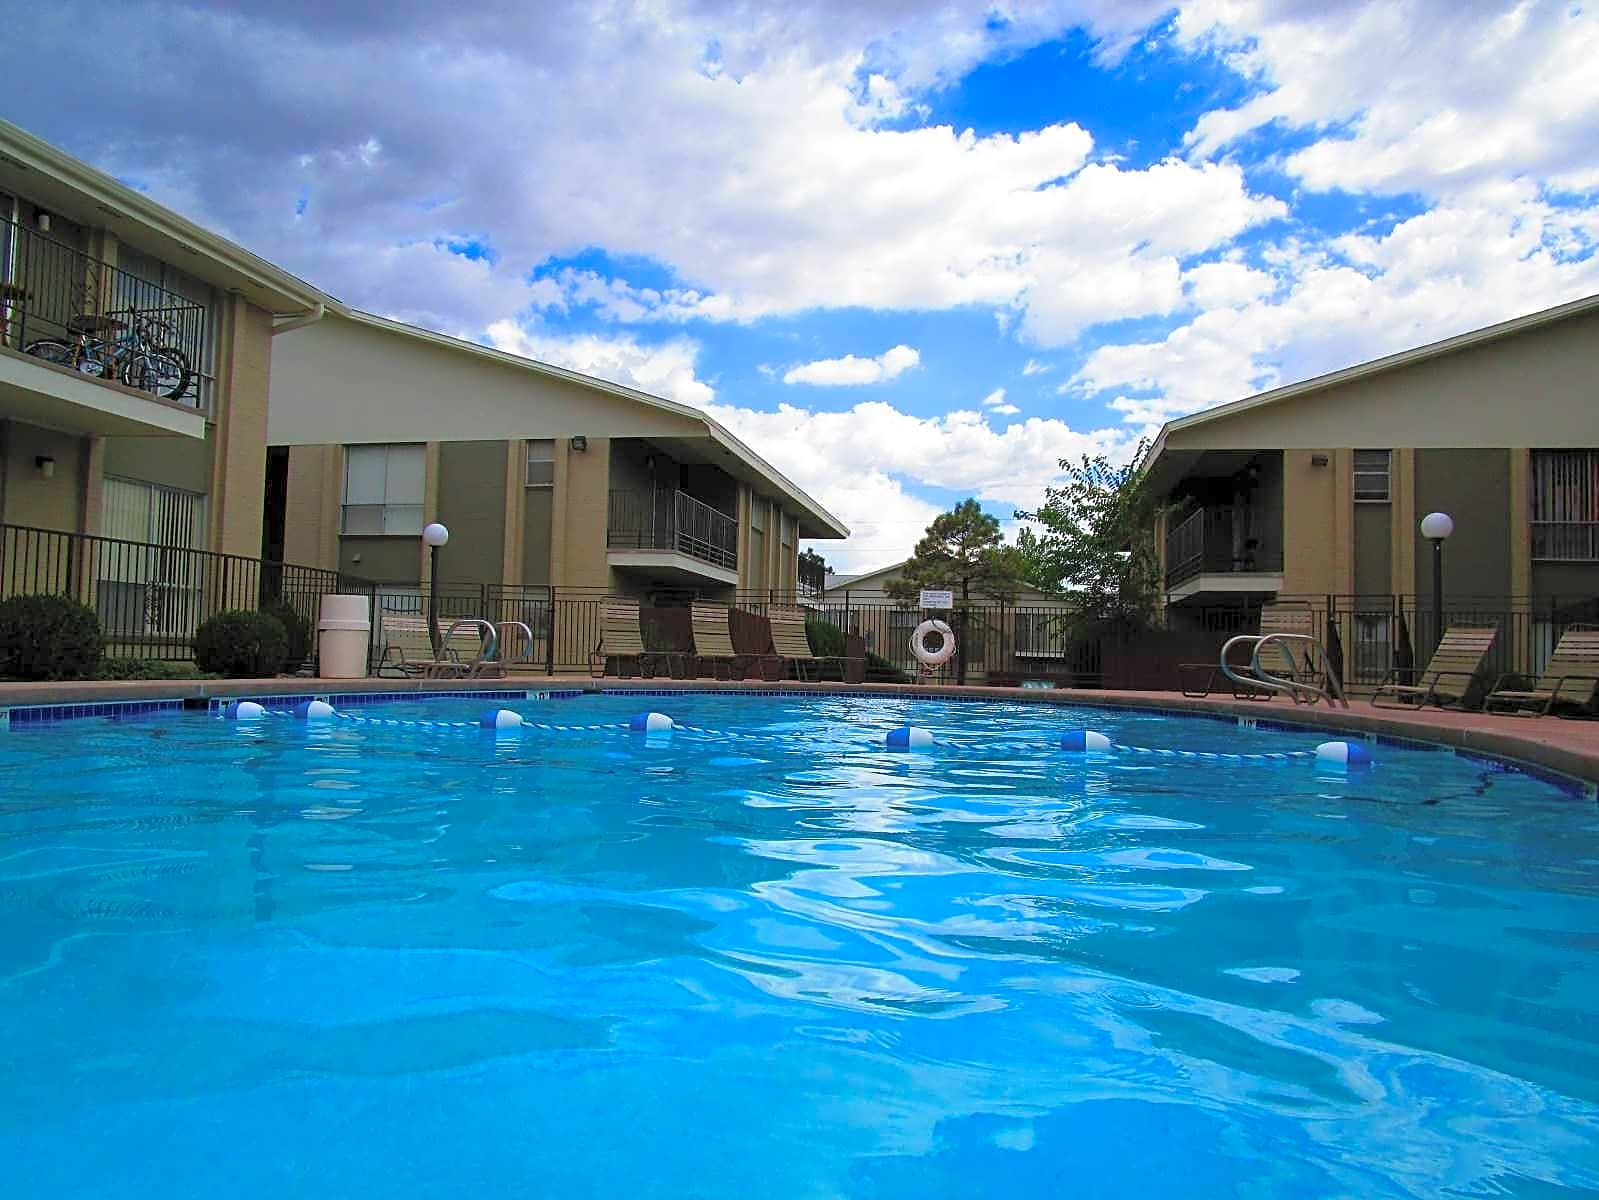 Apartments Near New Mexico North Park for University of New Mexico Students in Albuquerque, NM